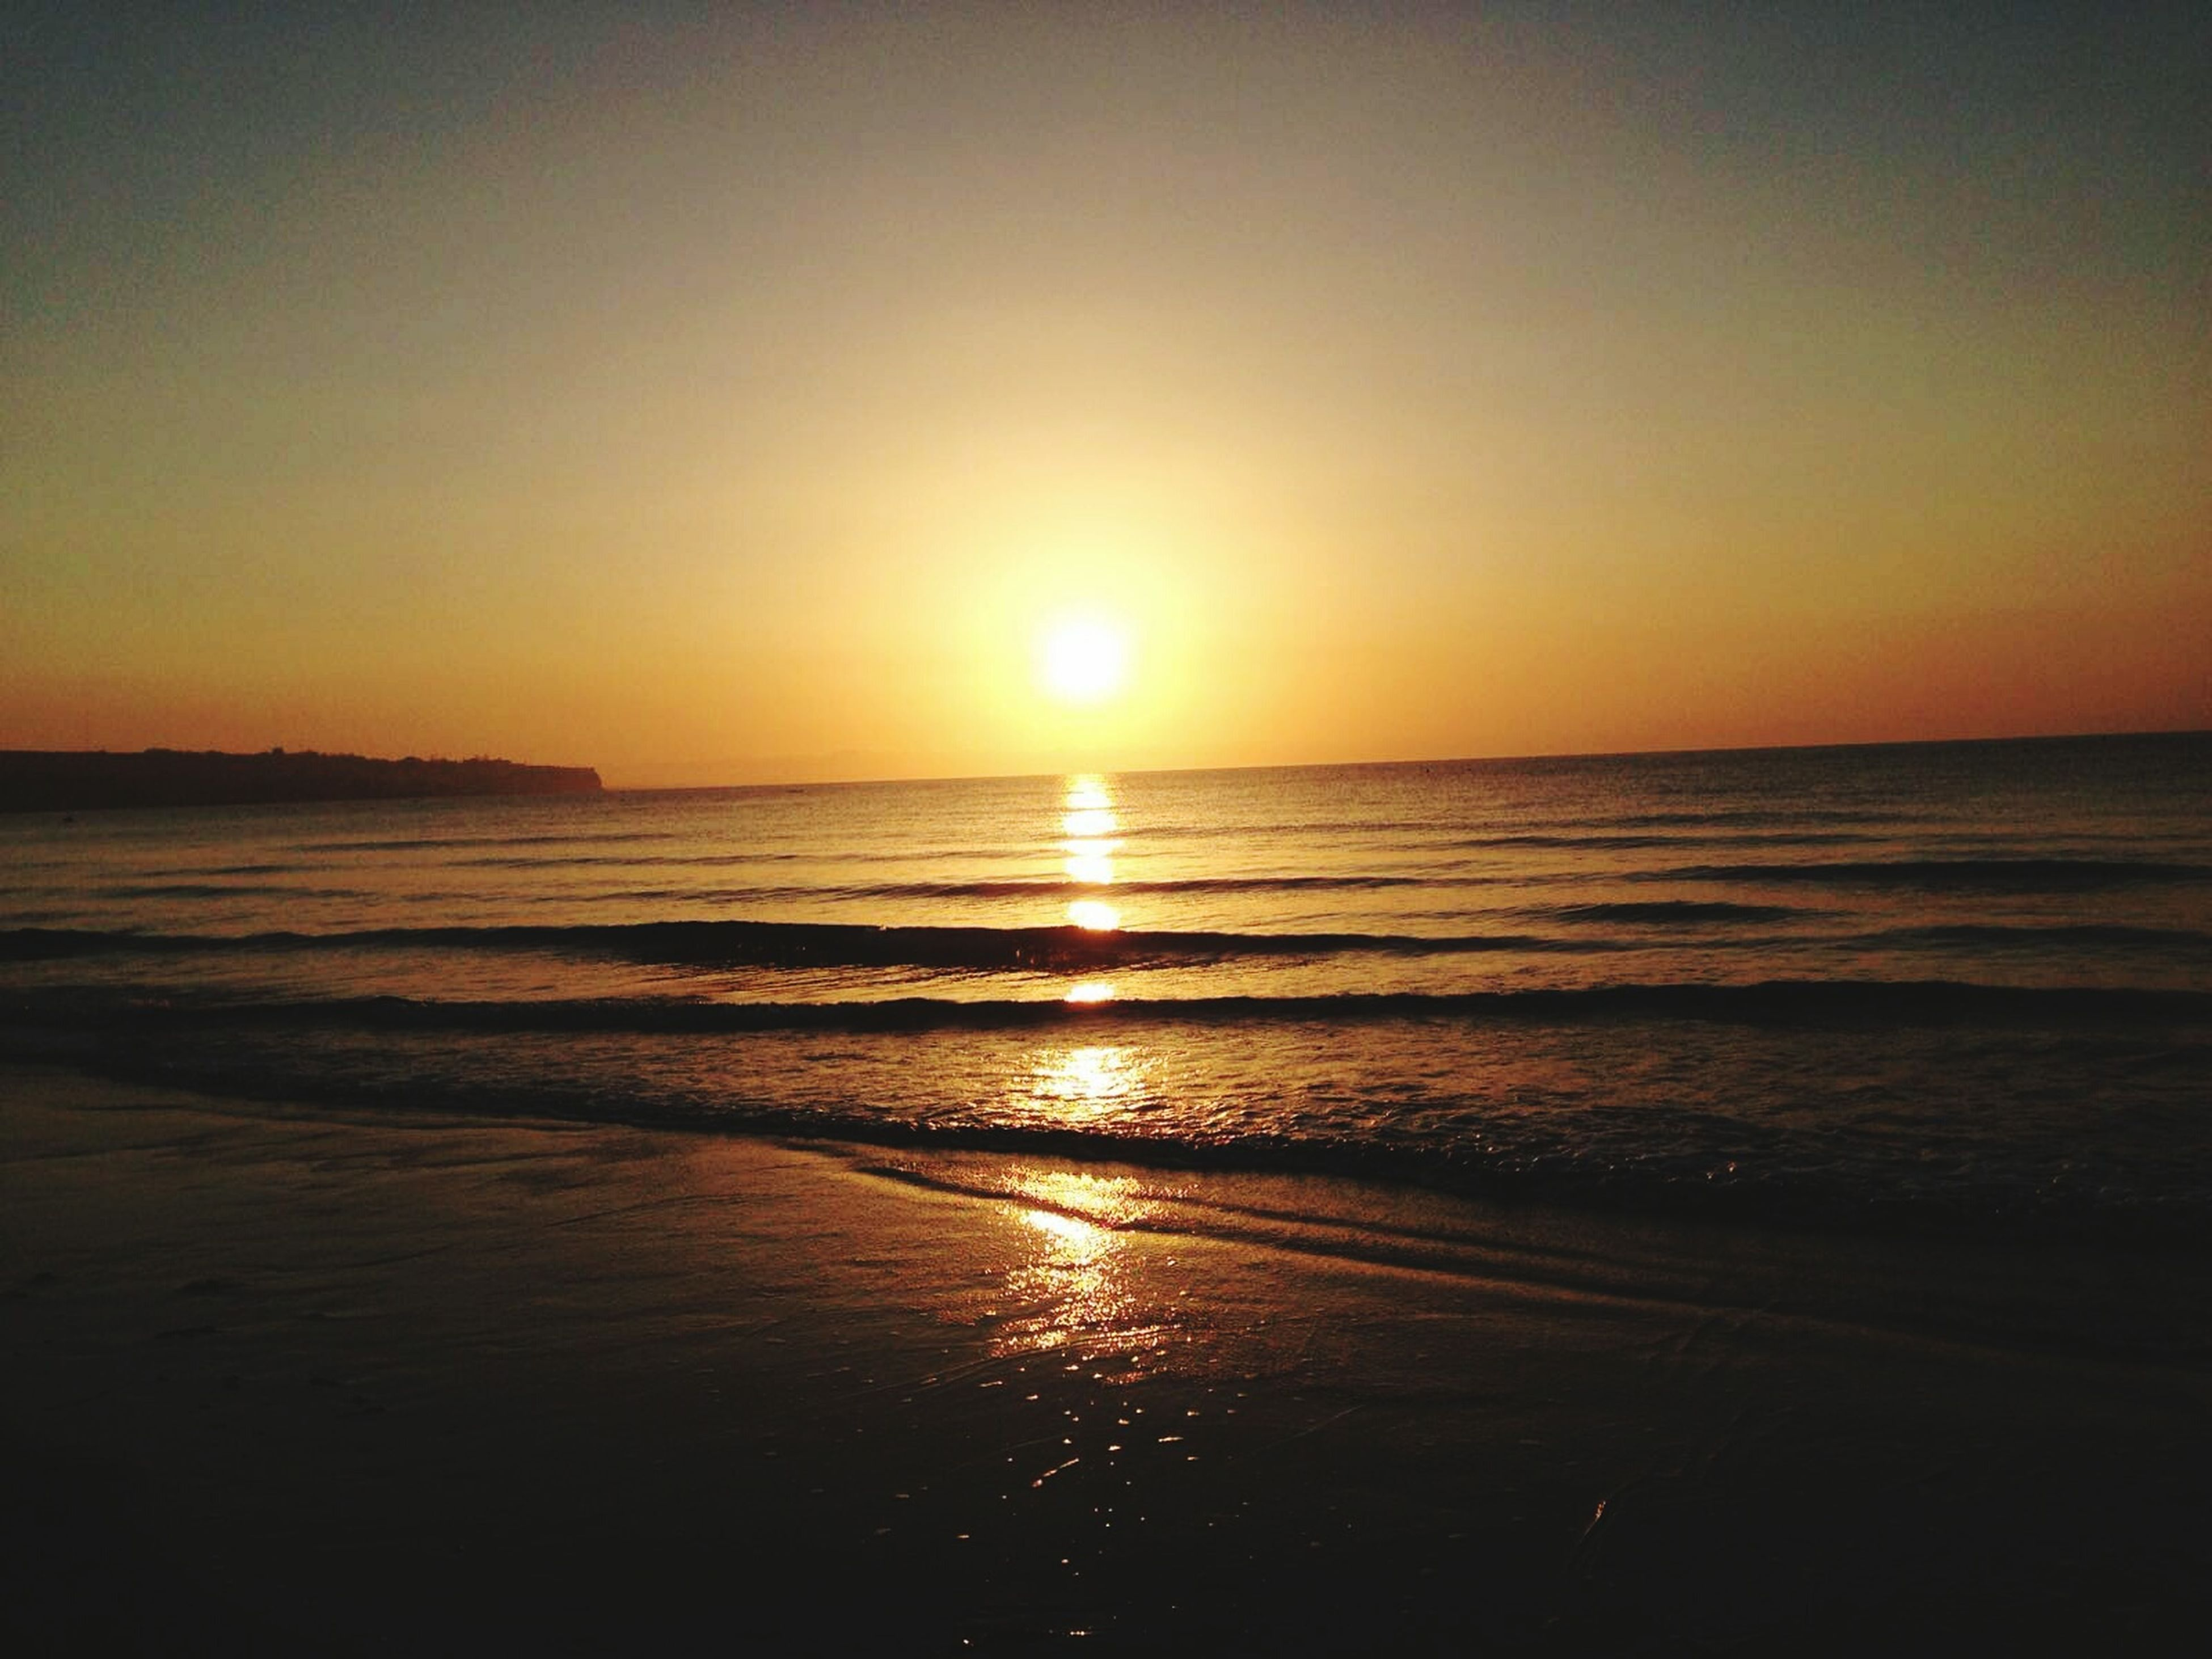 sunset, water, beach, sea, sun, scenics, tranquil scene, shore, beauty in nature, horizon over water, tranquility, reflection, travel destinations, idyllic, majestic, tourism, vacations, wave, nature, seascape, non-urban scene, orange color, back lit, atmosphere, tide, sky, calm, romantic sky, dramatic sky, coastline, outdoors, vibrant color